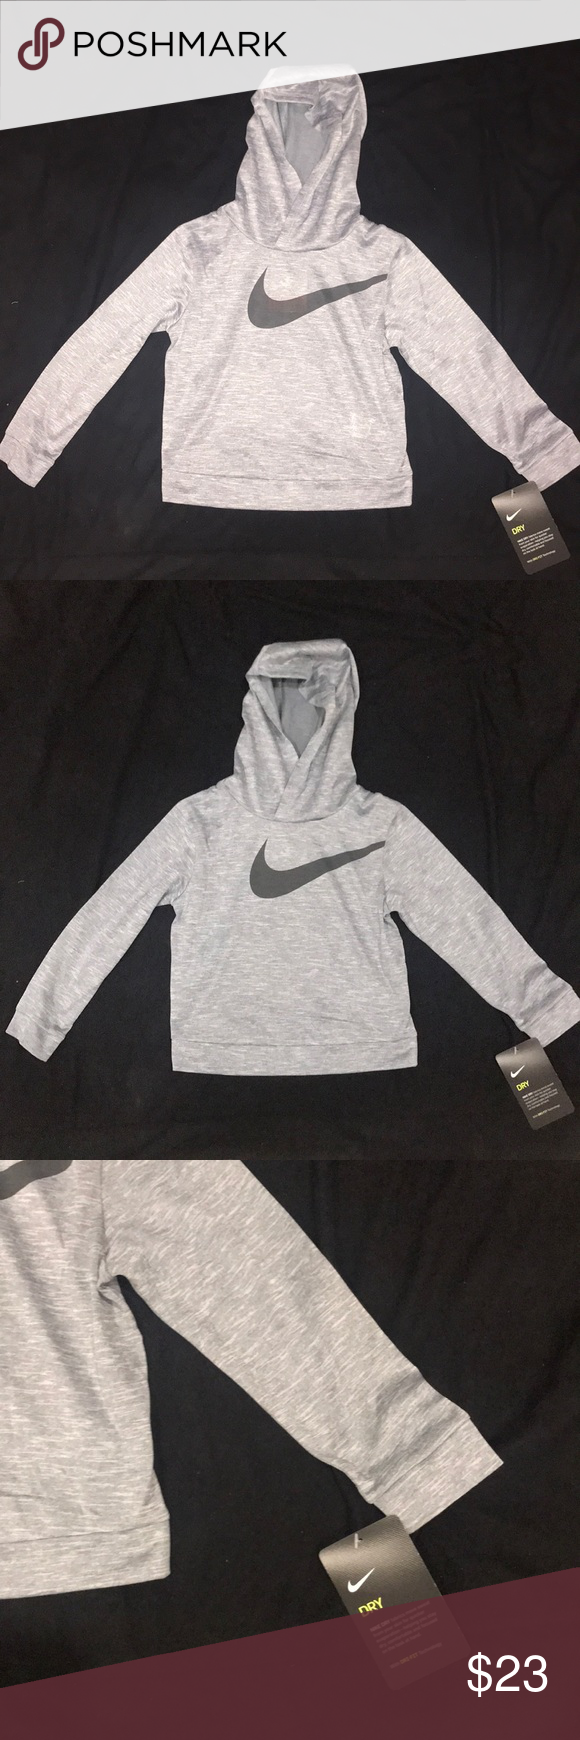 c20aed502d NWT Nike Boys Gray Dri-Fit Hoodie Shirt Toddler 2T Brand new with tags. Nike  Dr-Fit Hoodie Shirt. Super light weight and soft. Size 2 Nike Shirts & Tops  ...